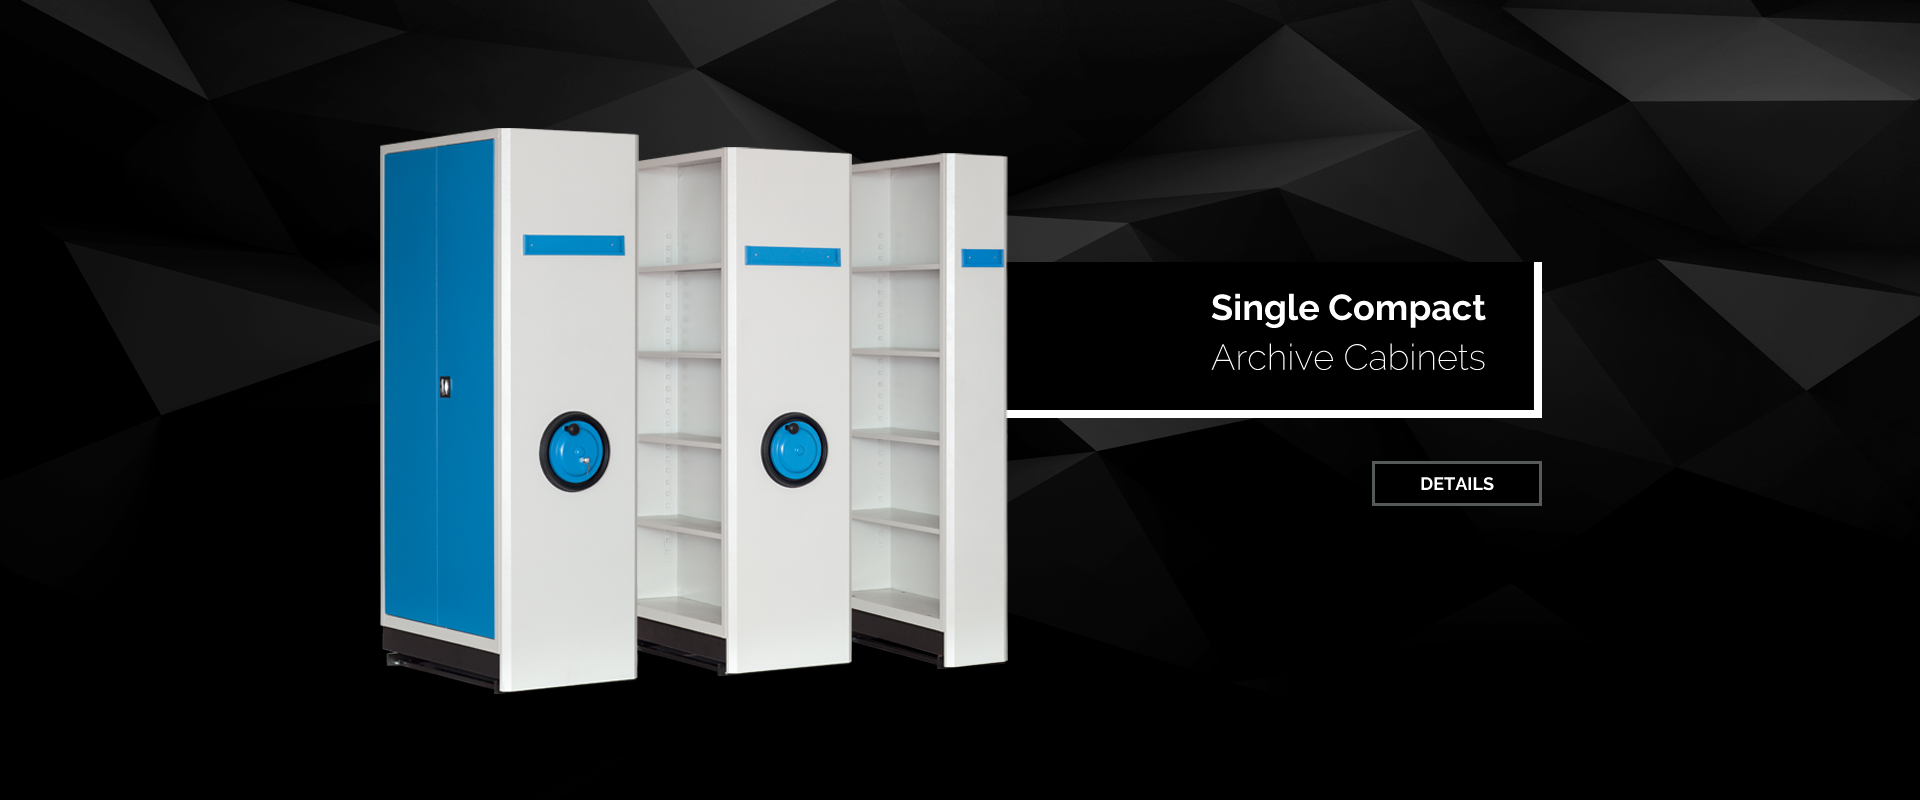 Single Compact Archive Cabinets